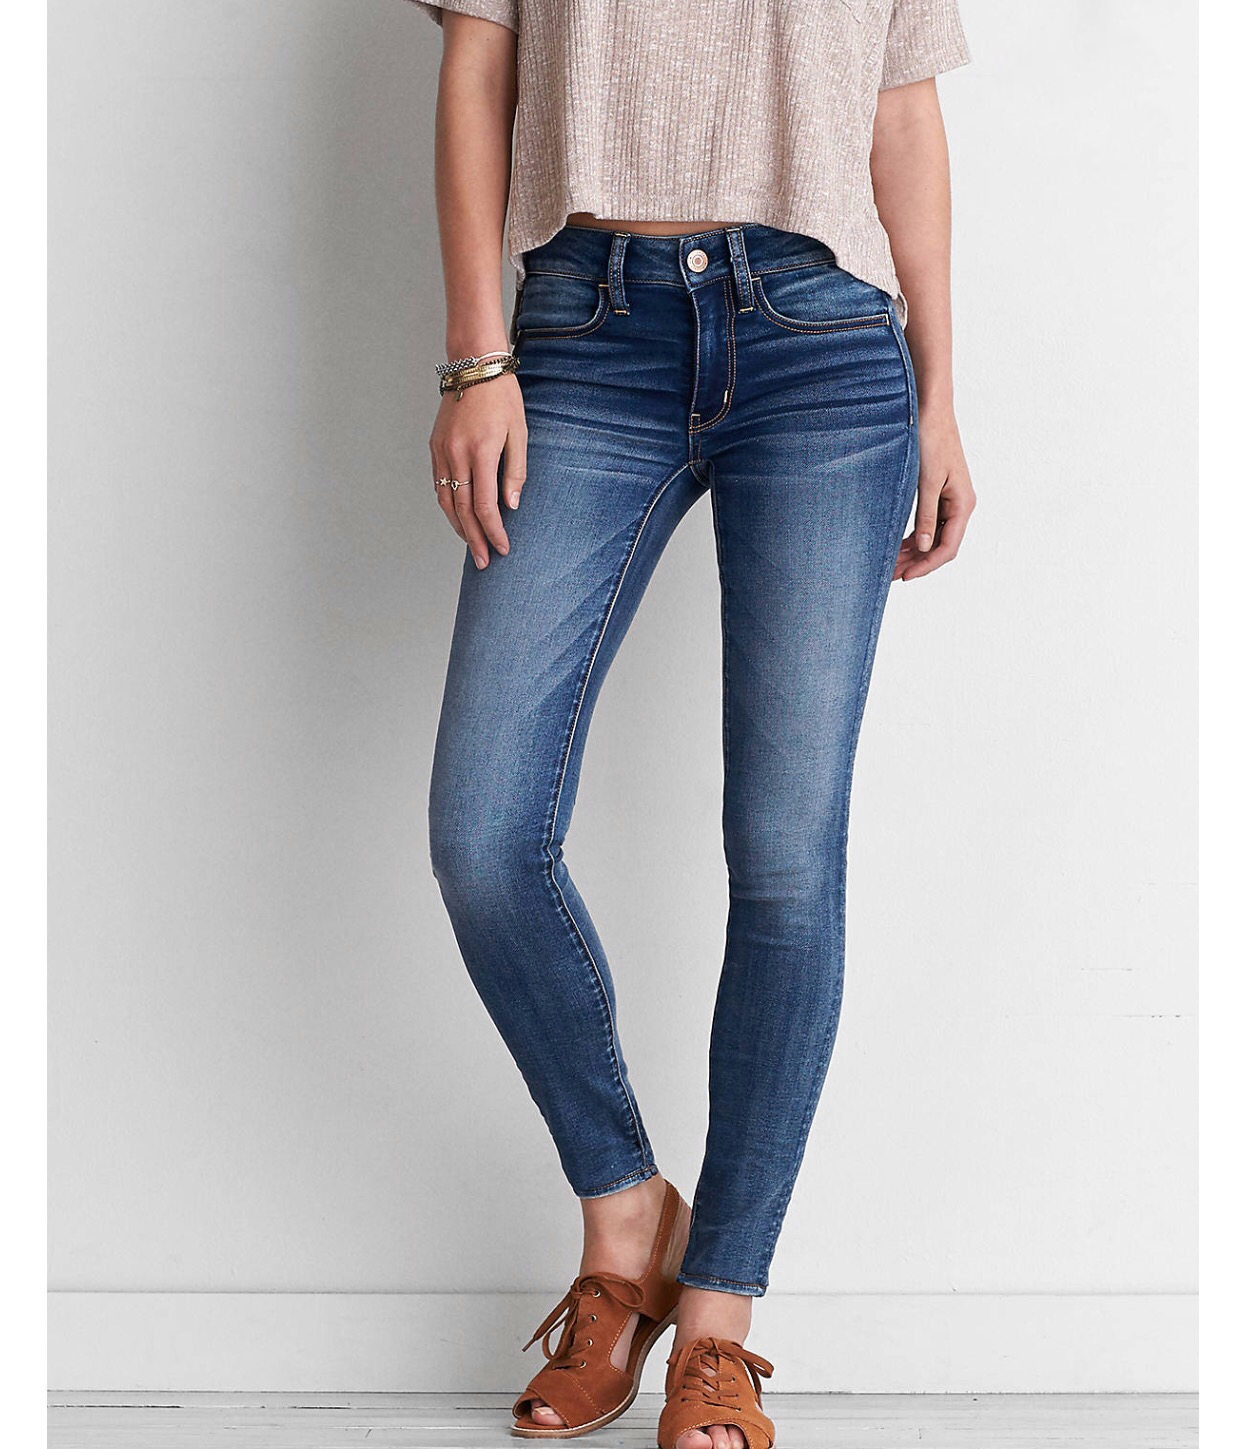 5030a5c989b4f American Eagle Outfitters: SUPER SOFT JEGGING - Elevated Style